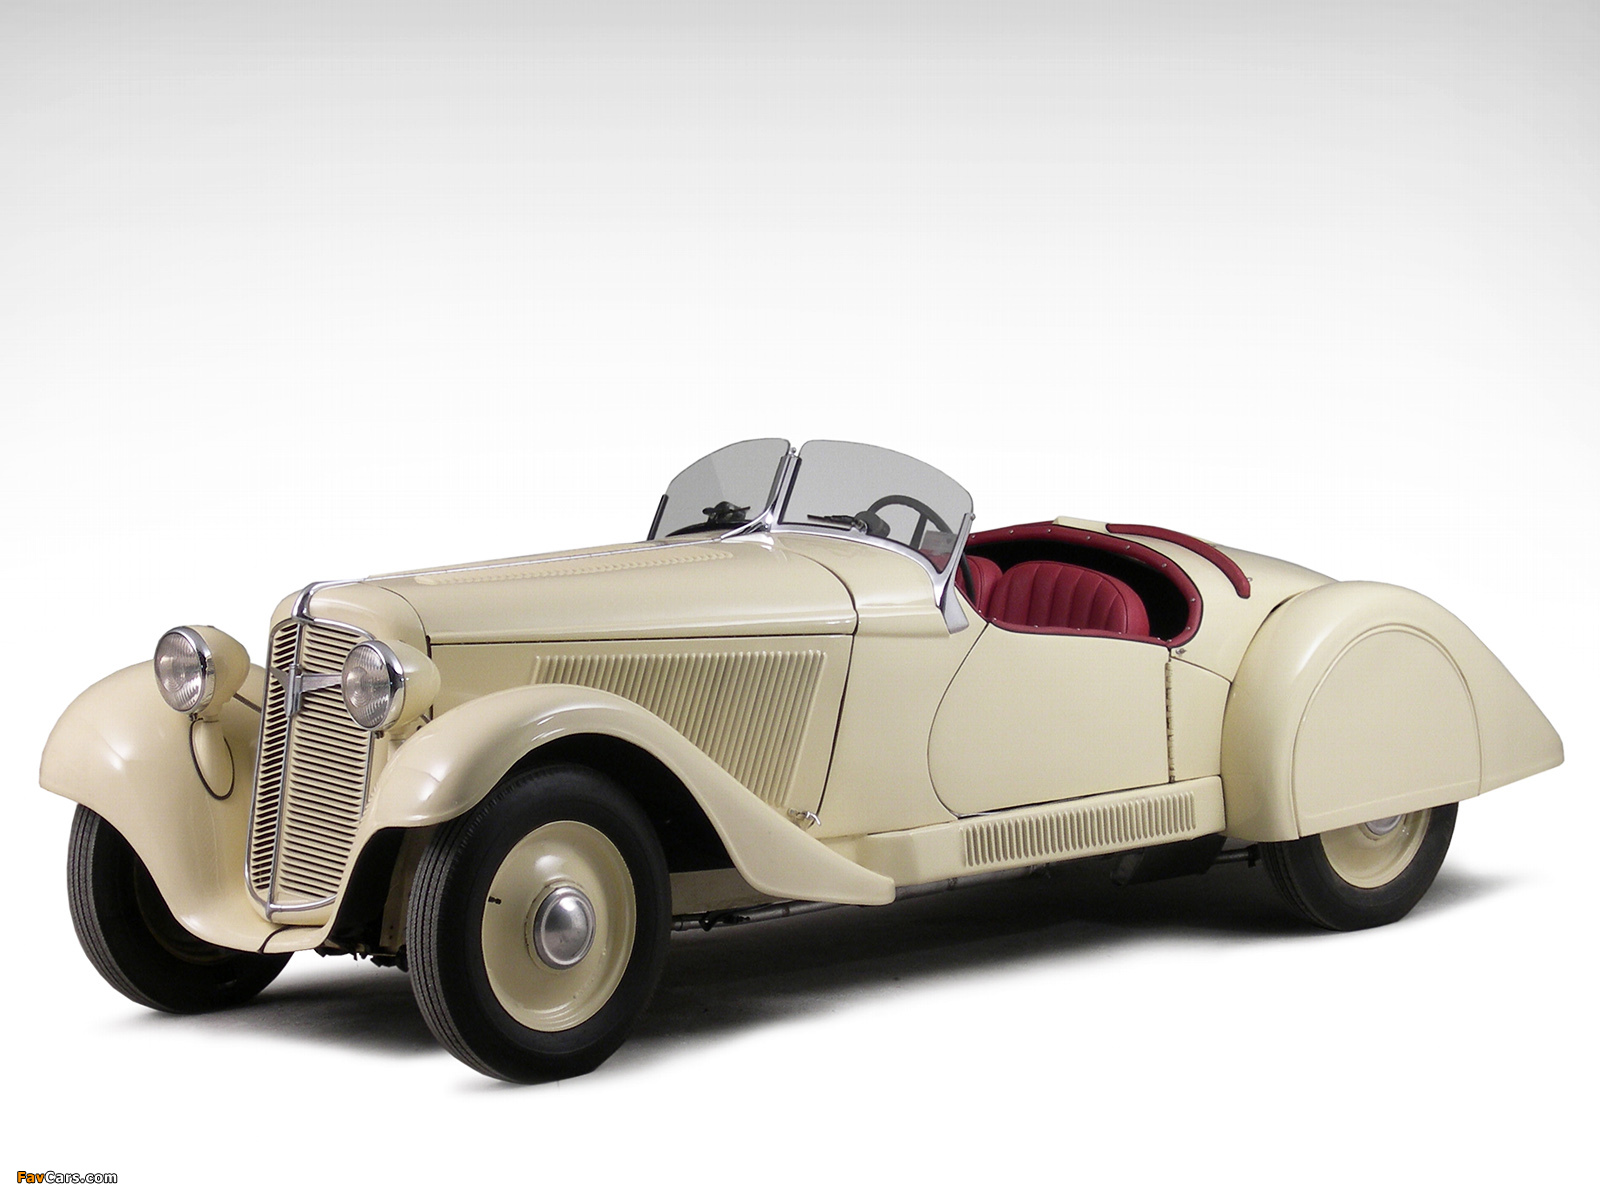 Adler Trumpf Junior I 1934 - 1941 Sedan 2 door #1